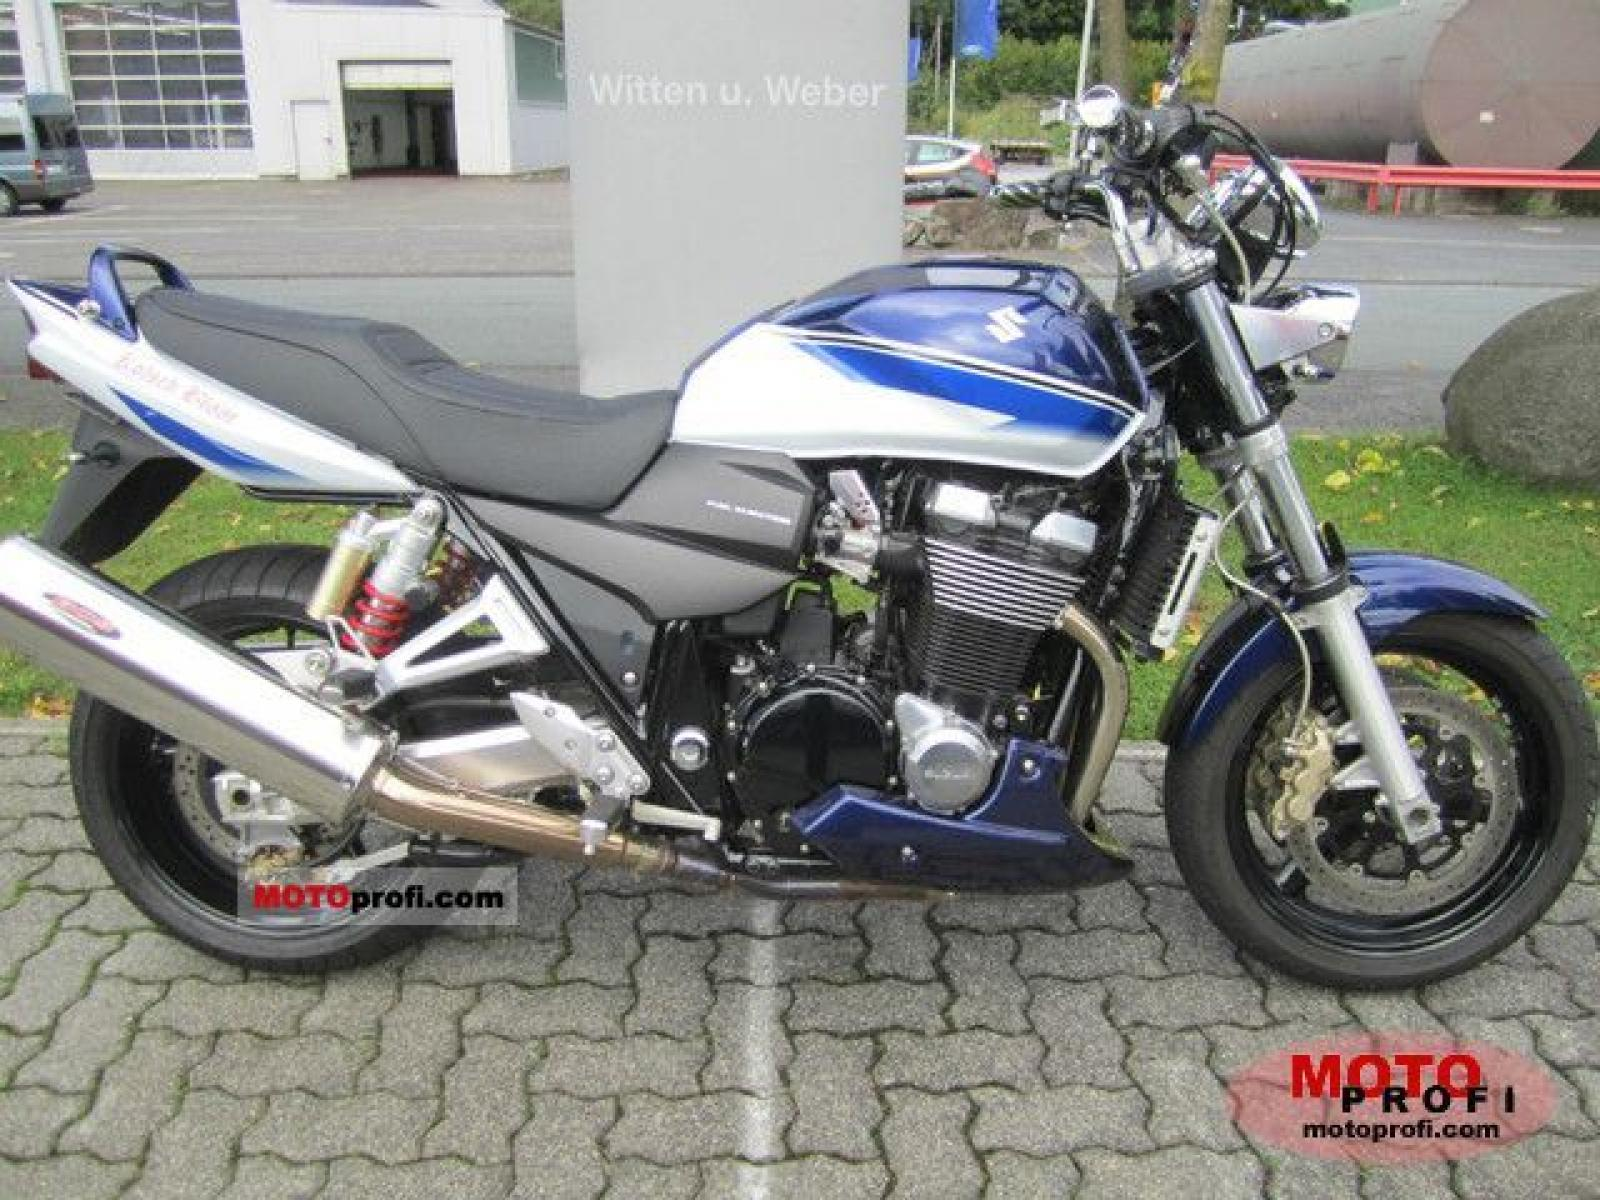 2008 suzuki gsx 1400 pics specs and information. Black Bedroom Furniture Sets. Home Design Ideas